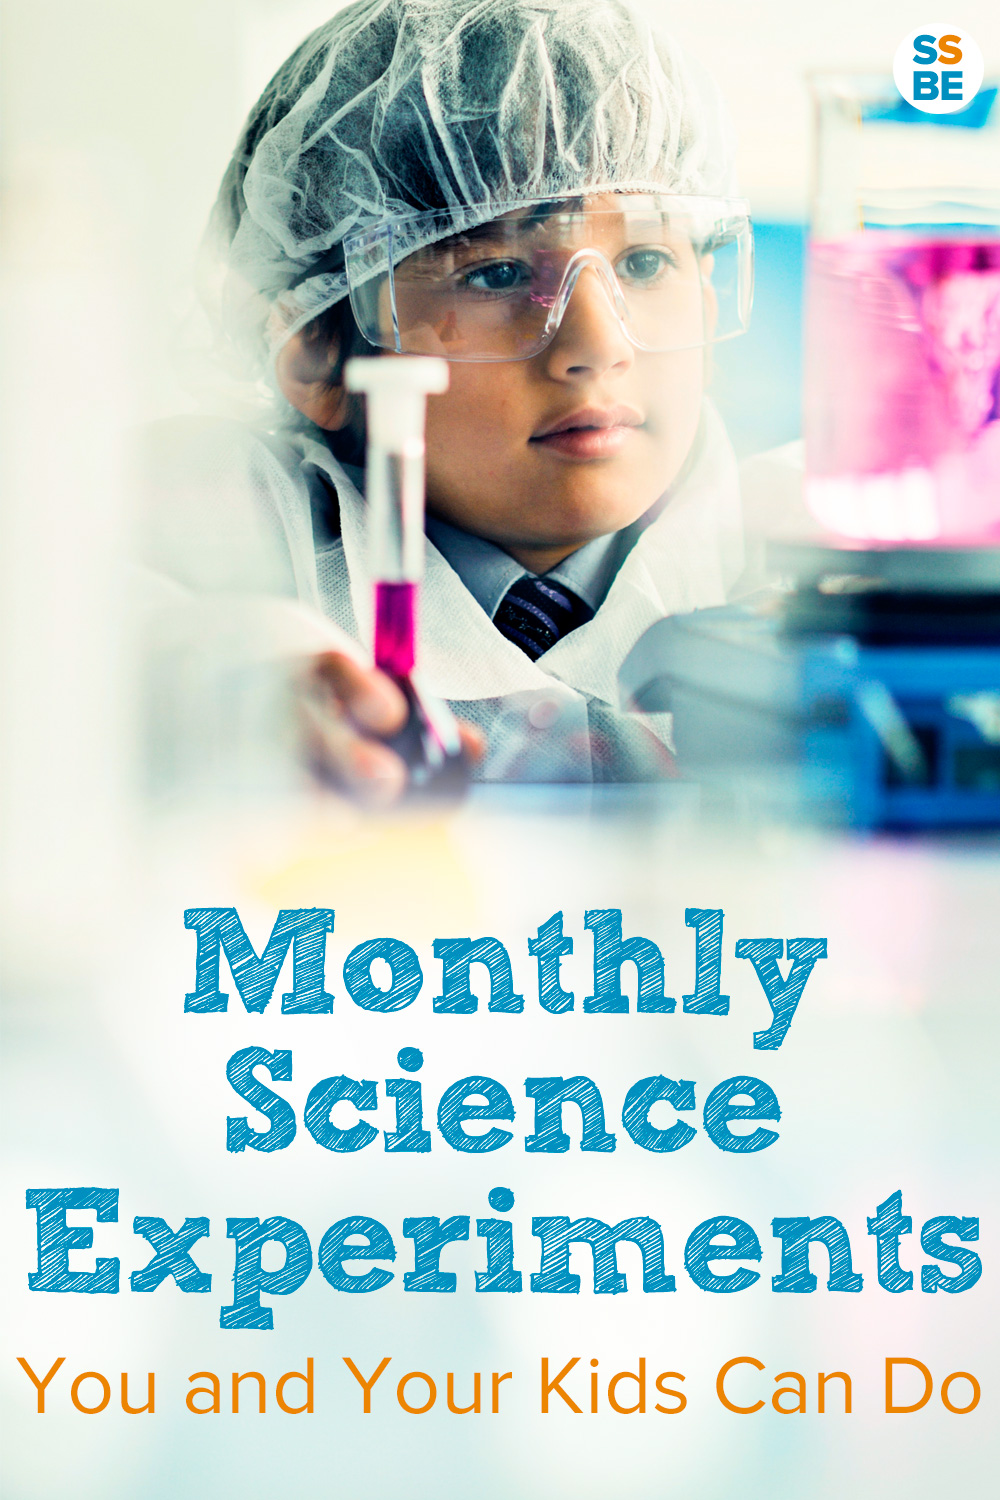 Monthly Science Experiments for Kids